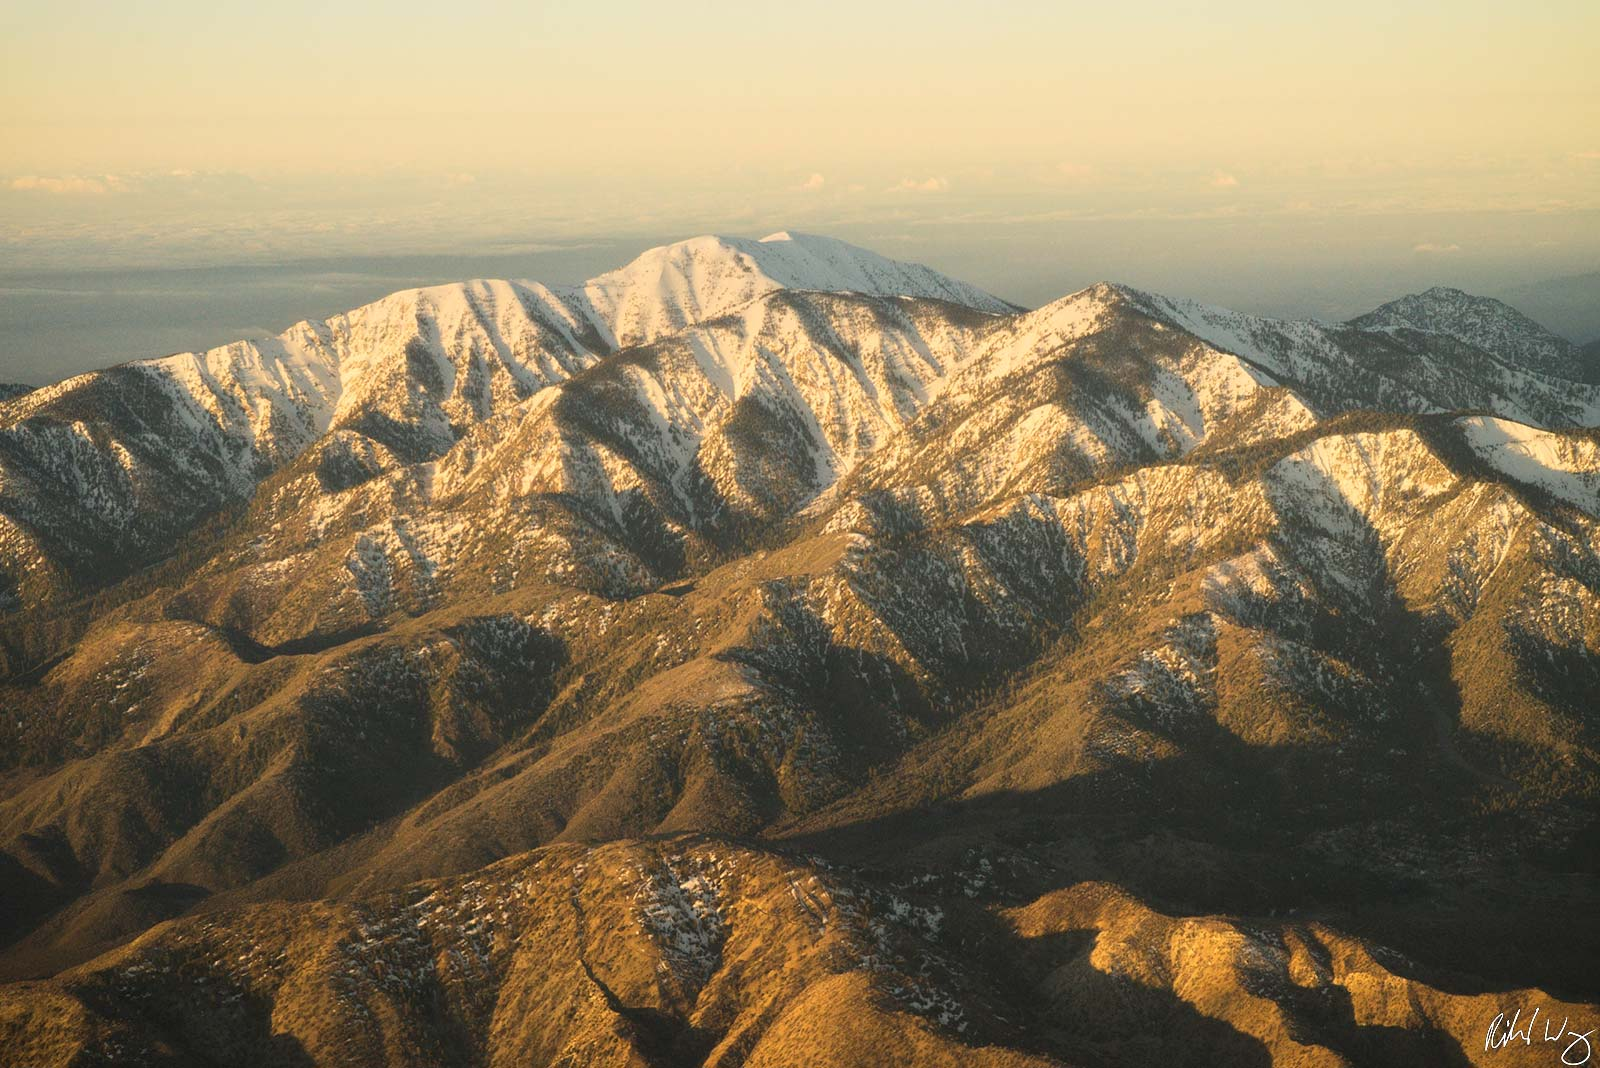 San Gabriel Mountains Aerial Photo, photo